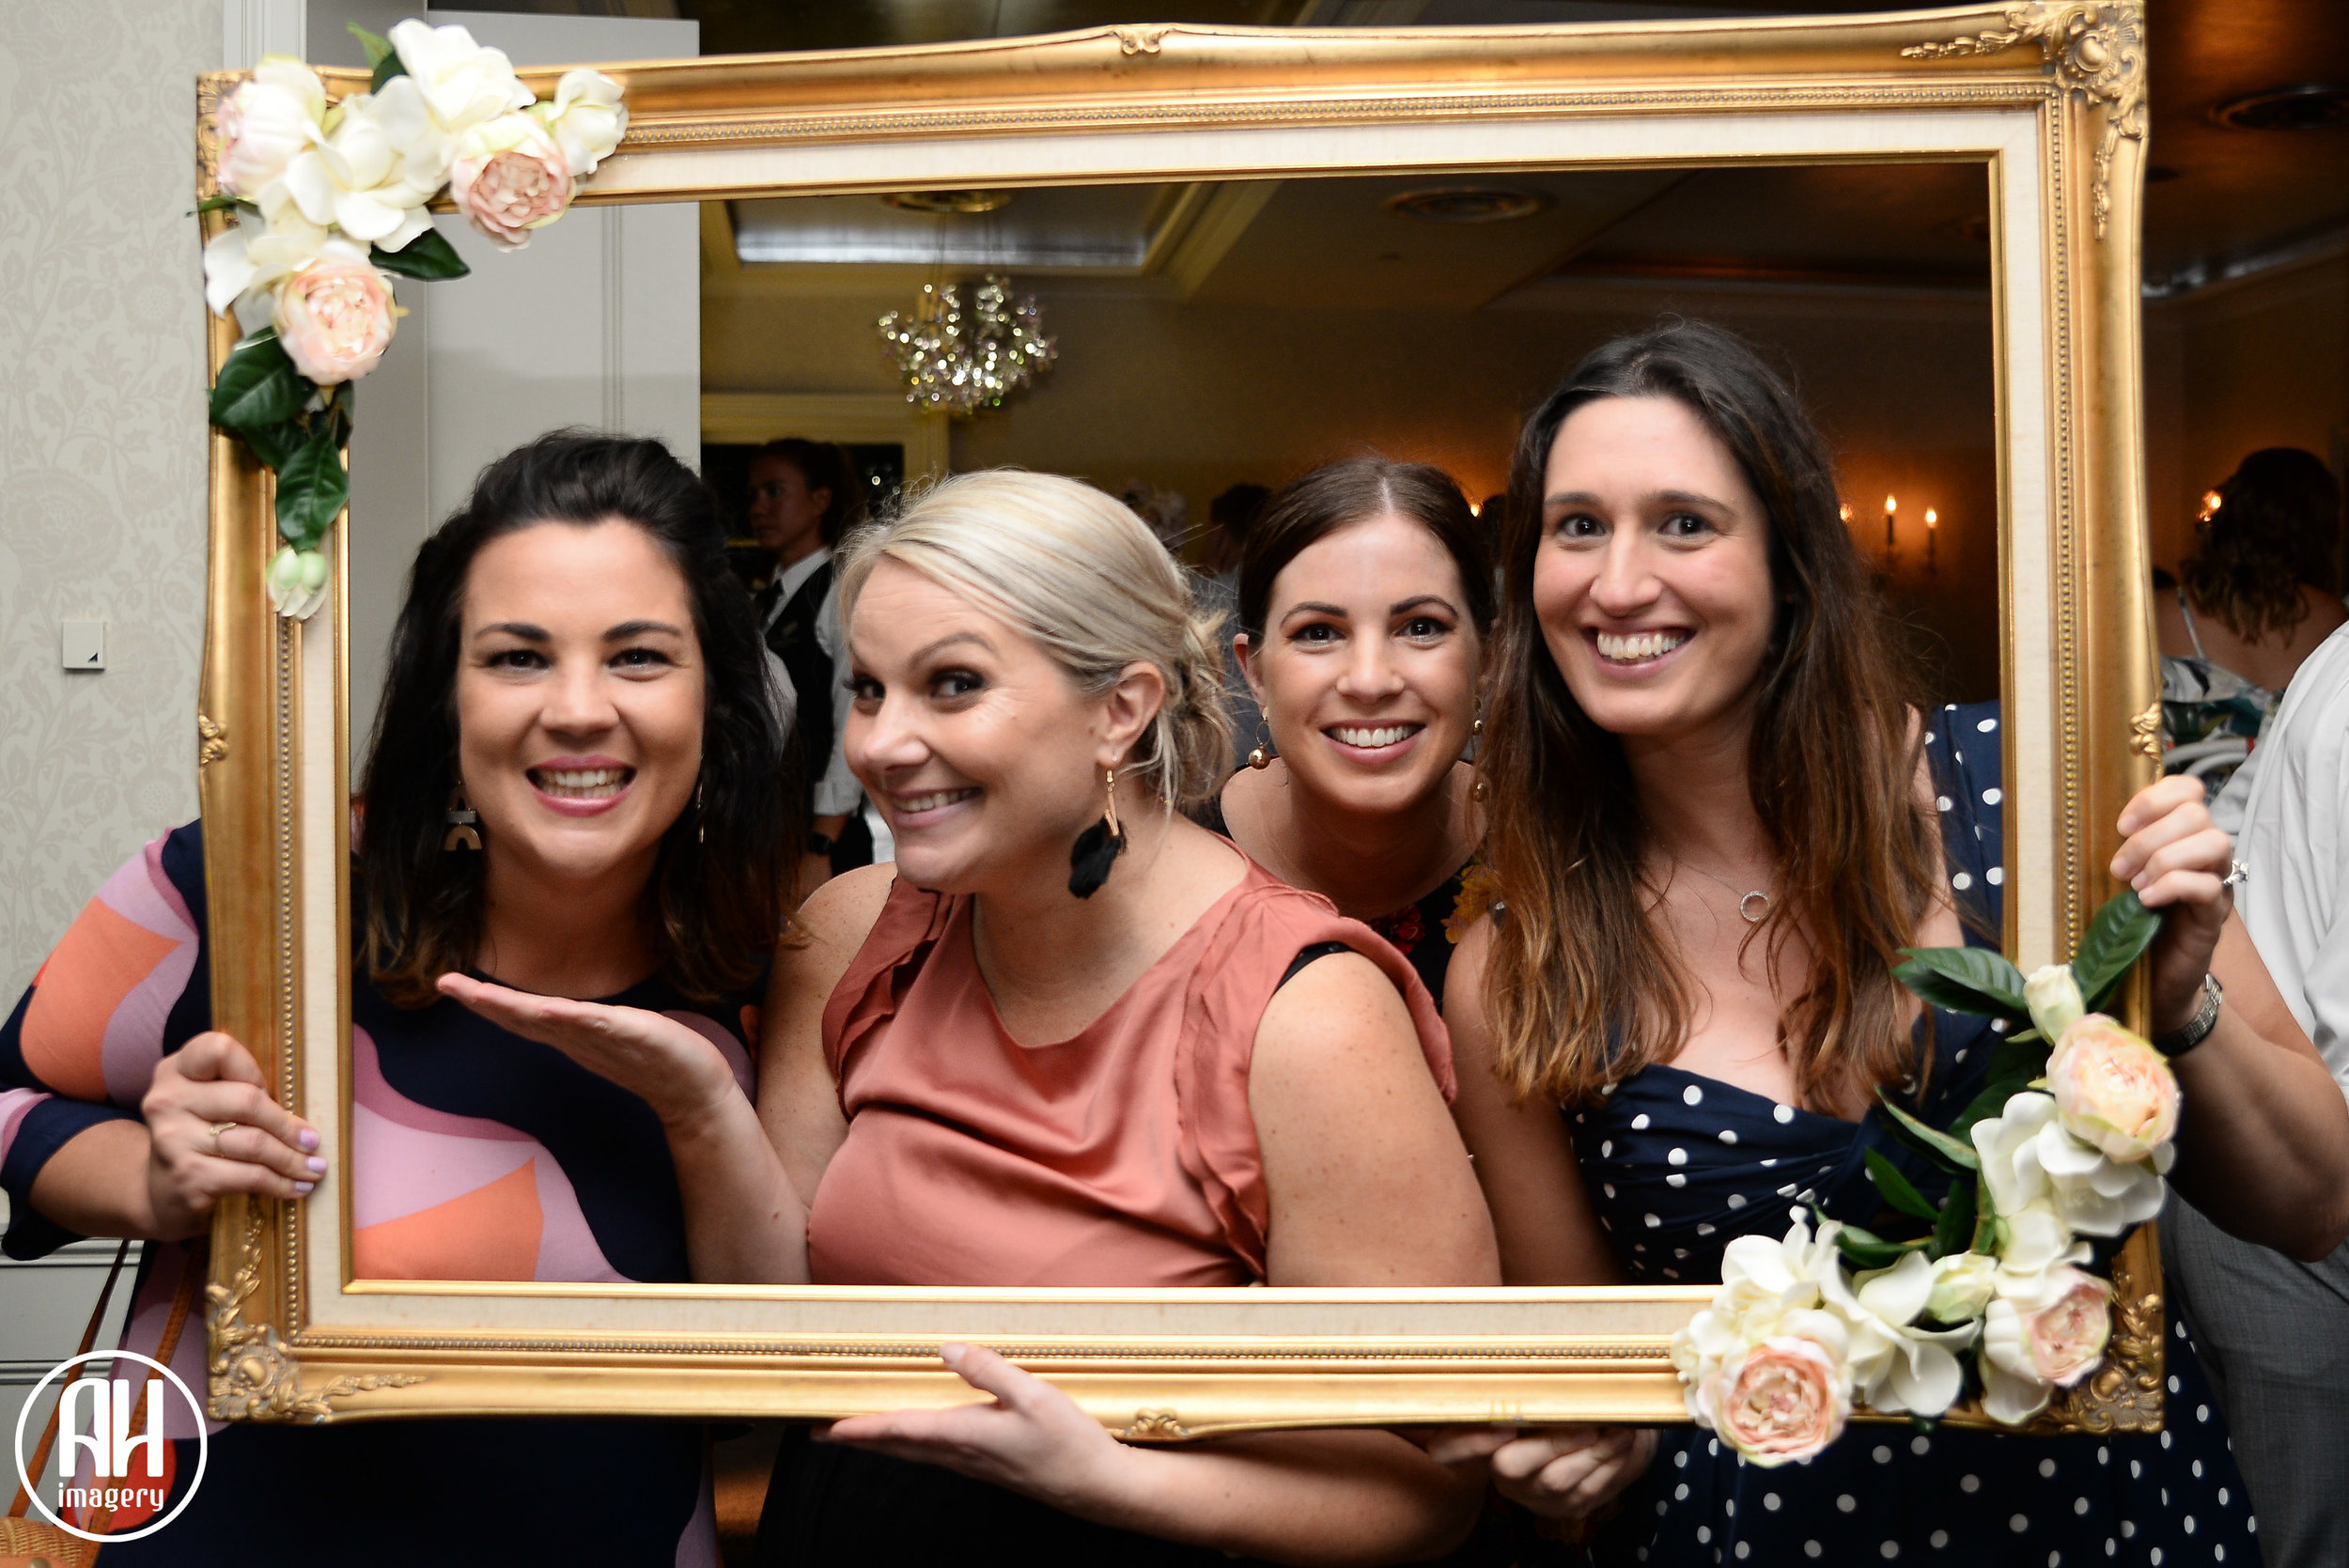 Wedding guests having fun at the photo booth at a Dunbar House Wedding Reception